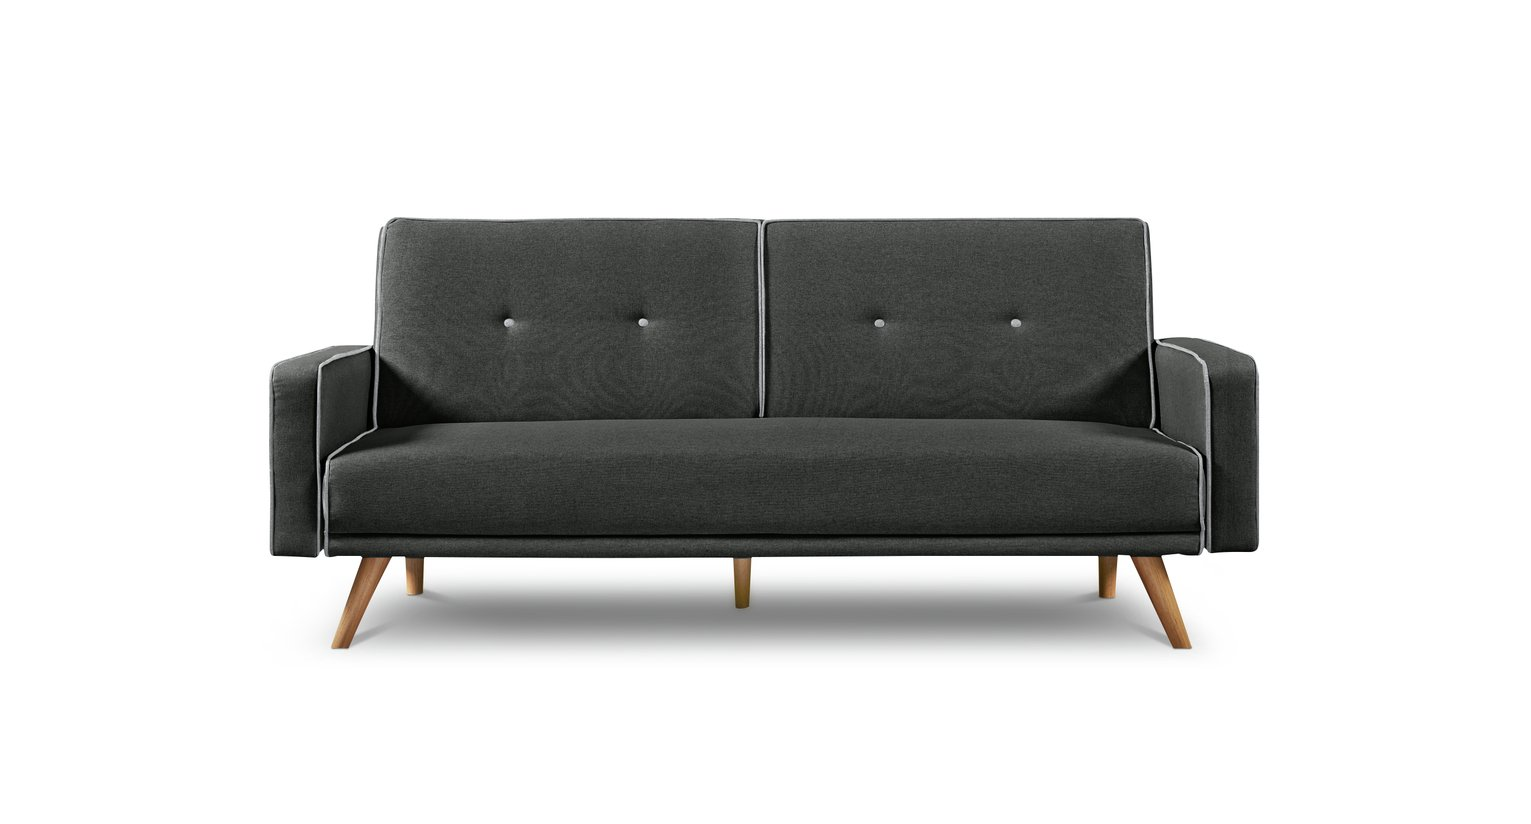 Argos Home Frankie 2 Seater Clic Clac Sofa Bed - Charcoal